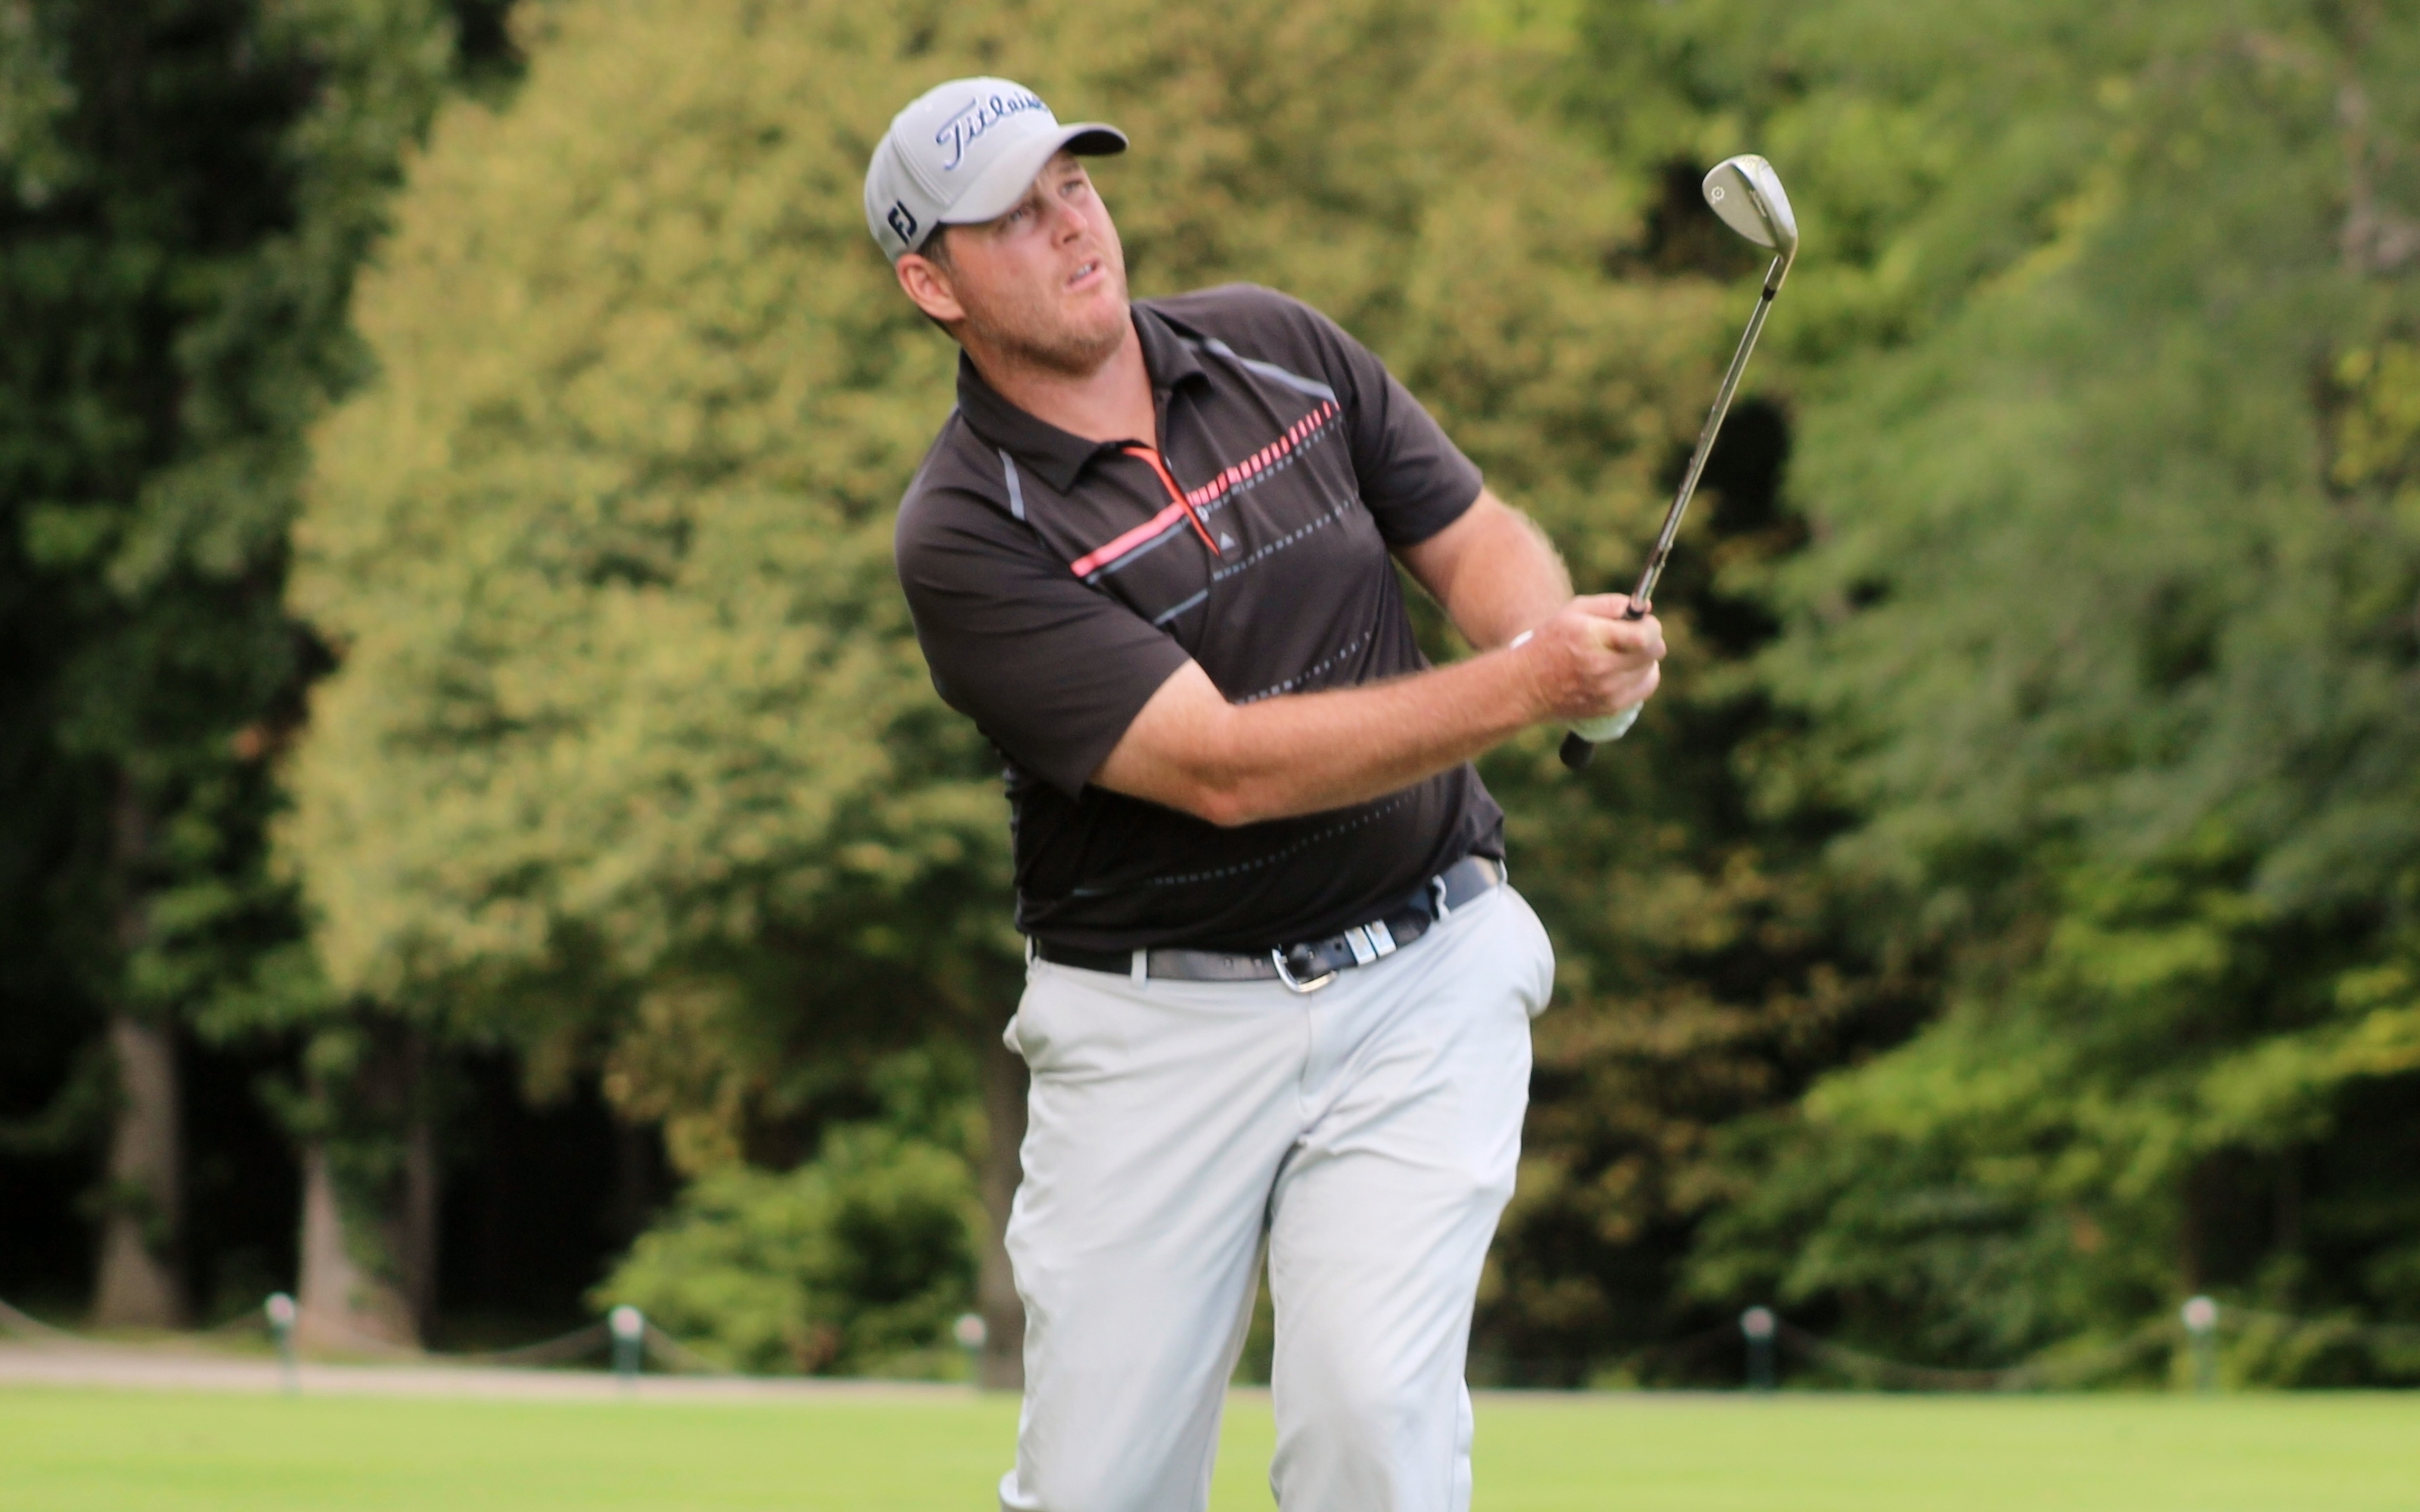 Melton Looks for First Indiana PGA Professional Championship Title